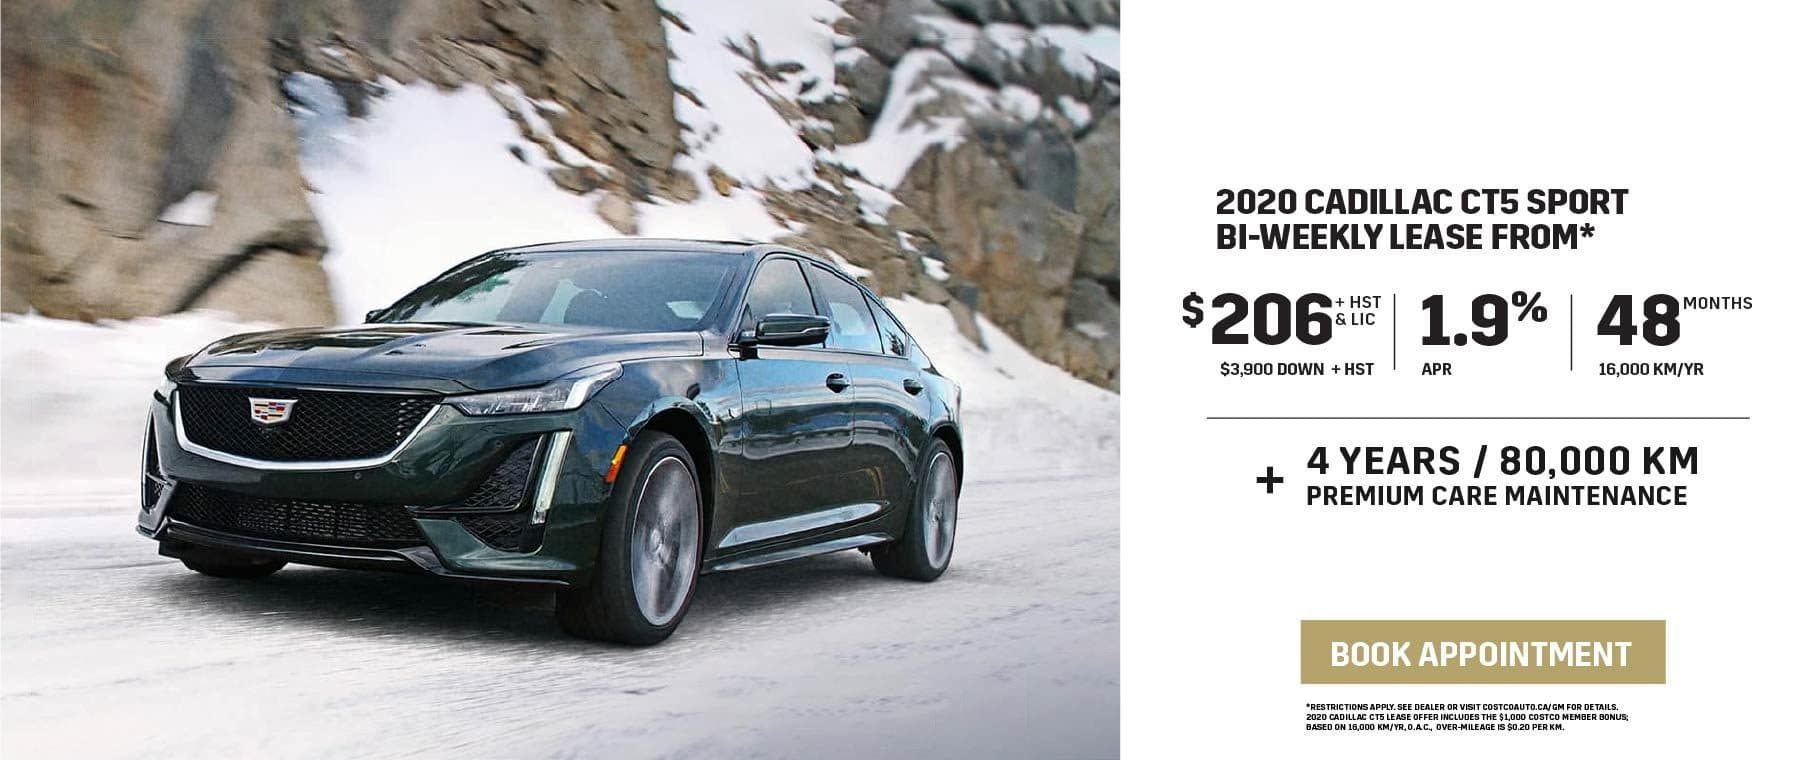 2020 CADILLAC CT5 SPORT BI-WEEKLY LEASE FROM $206 Bi-Weekly FOR 48 MONTHS